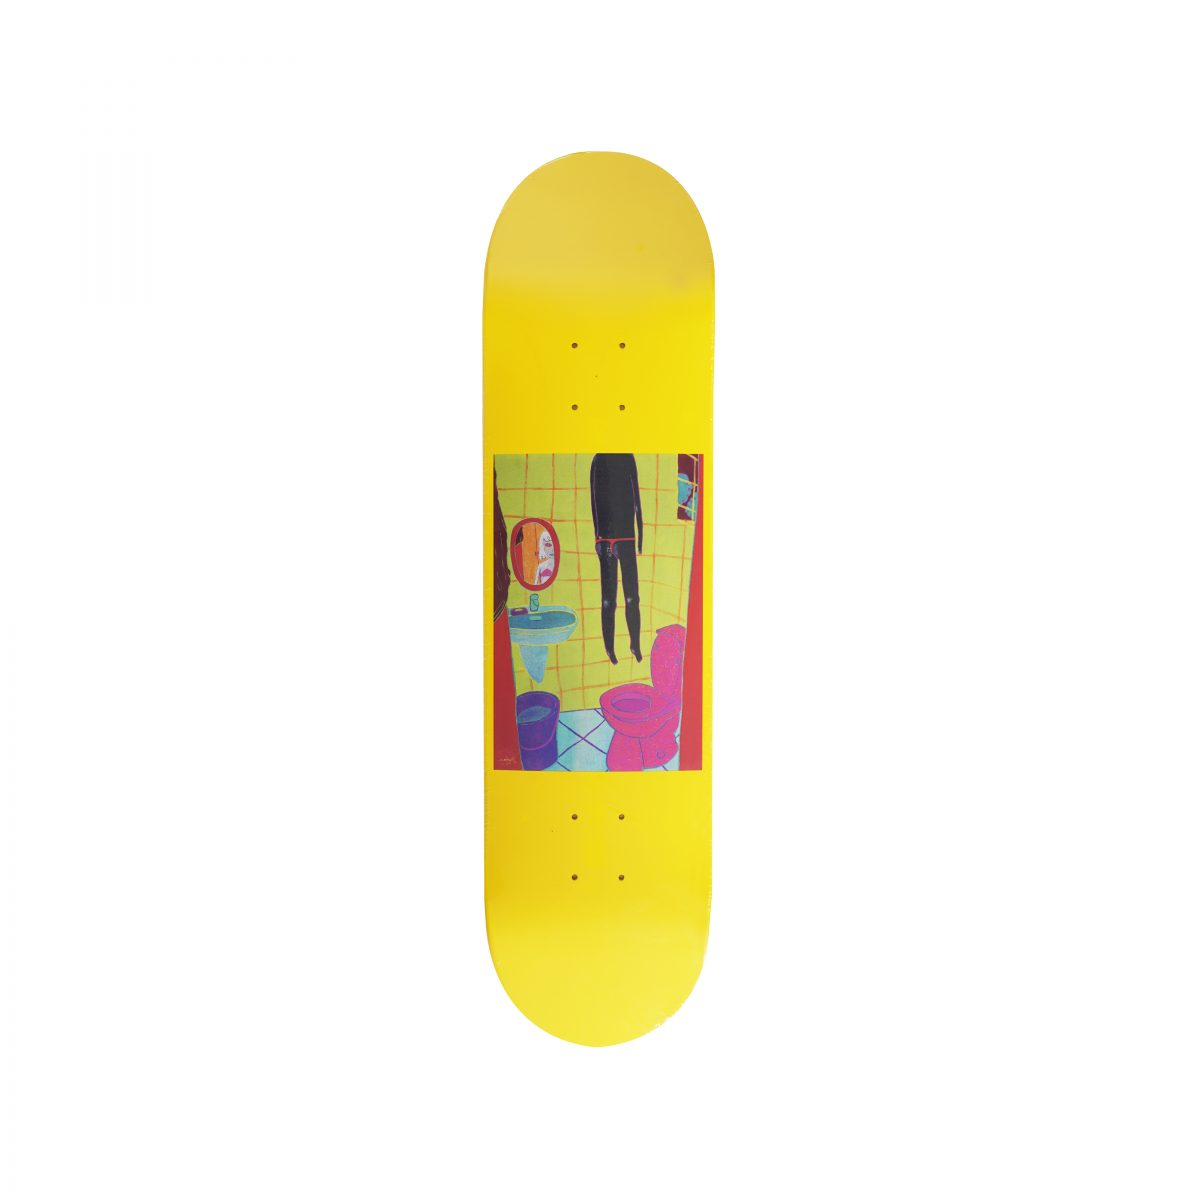 YEOKAA FOR PROGRESS® S/S 2018 SKATE DECK (YELLOW)